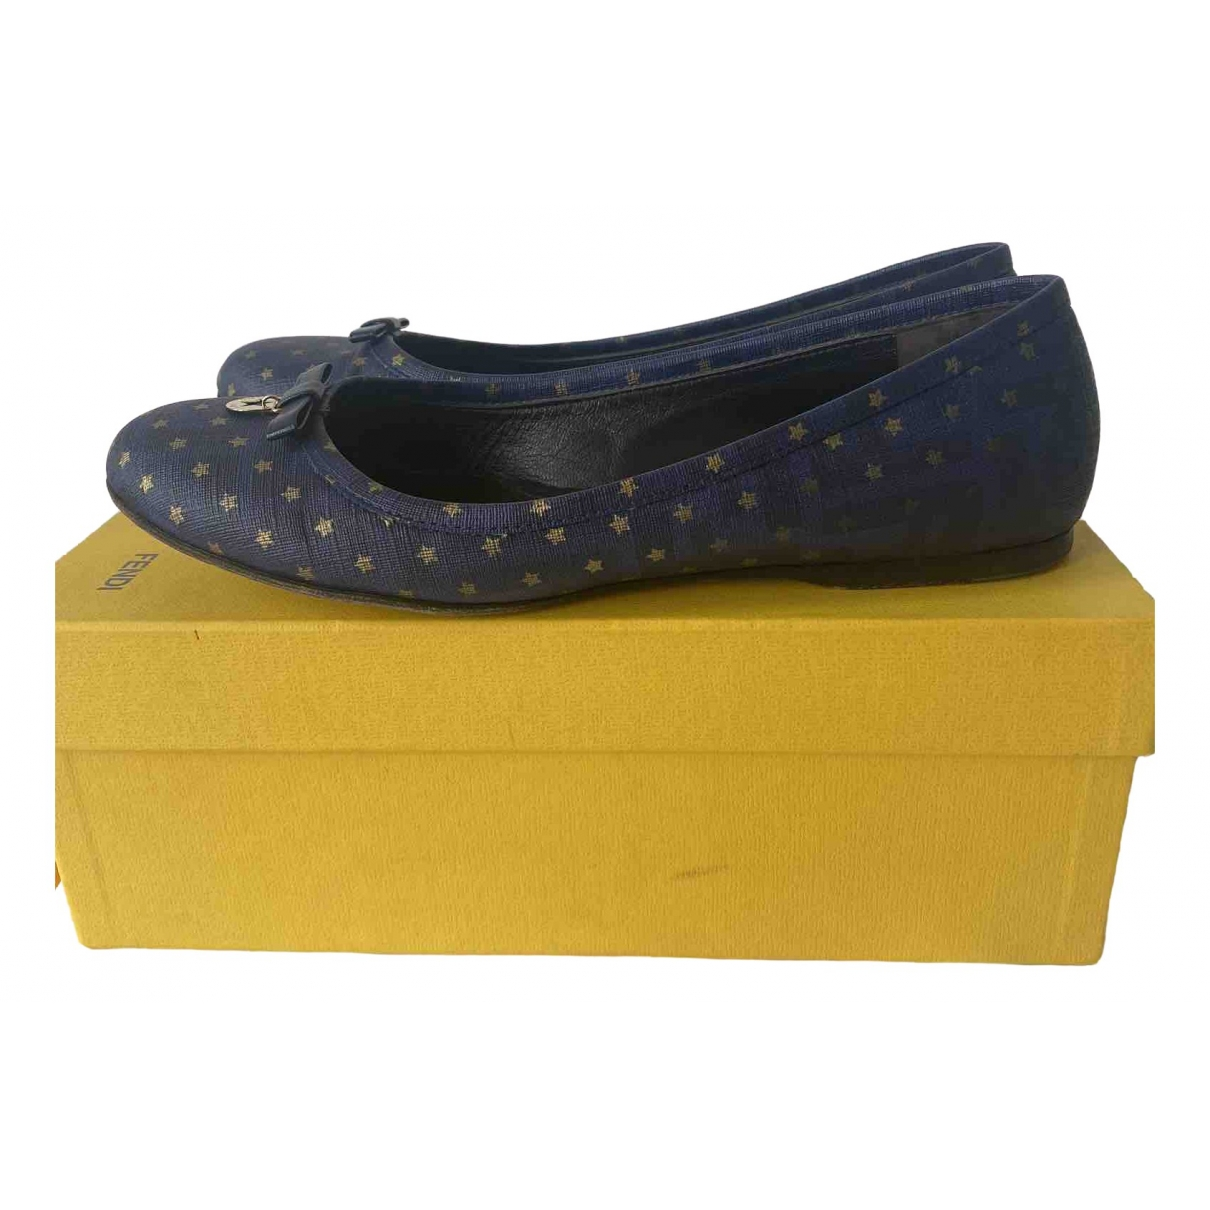 Fendi \N Blue Leather Ballet flats for Women 39.5 EU